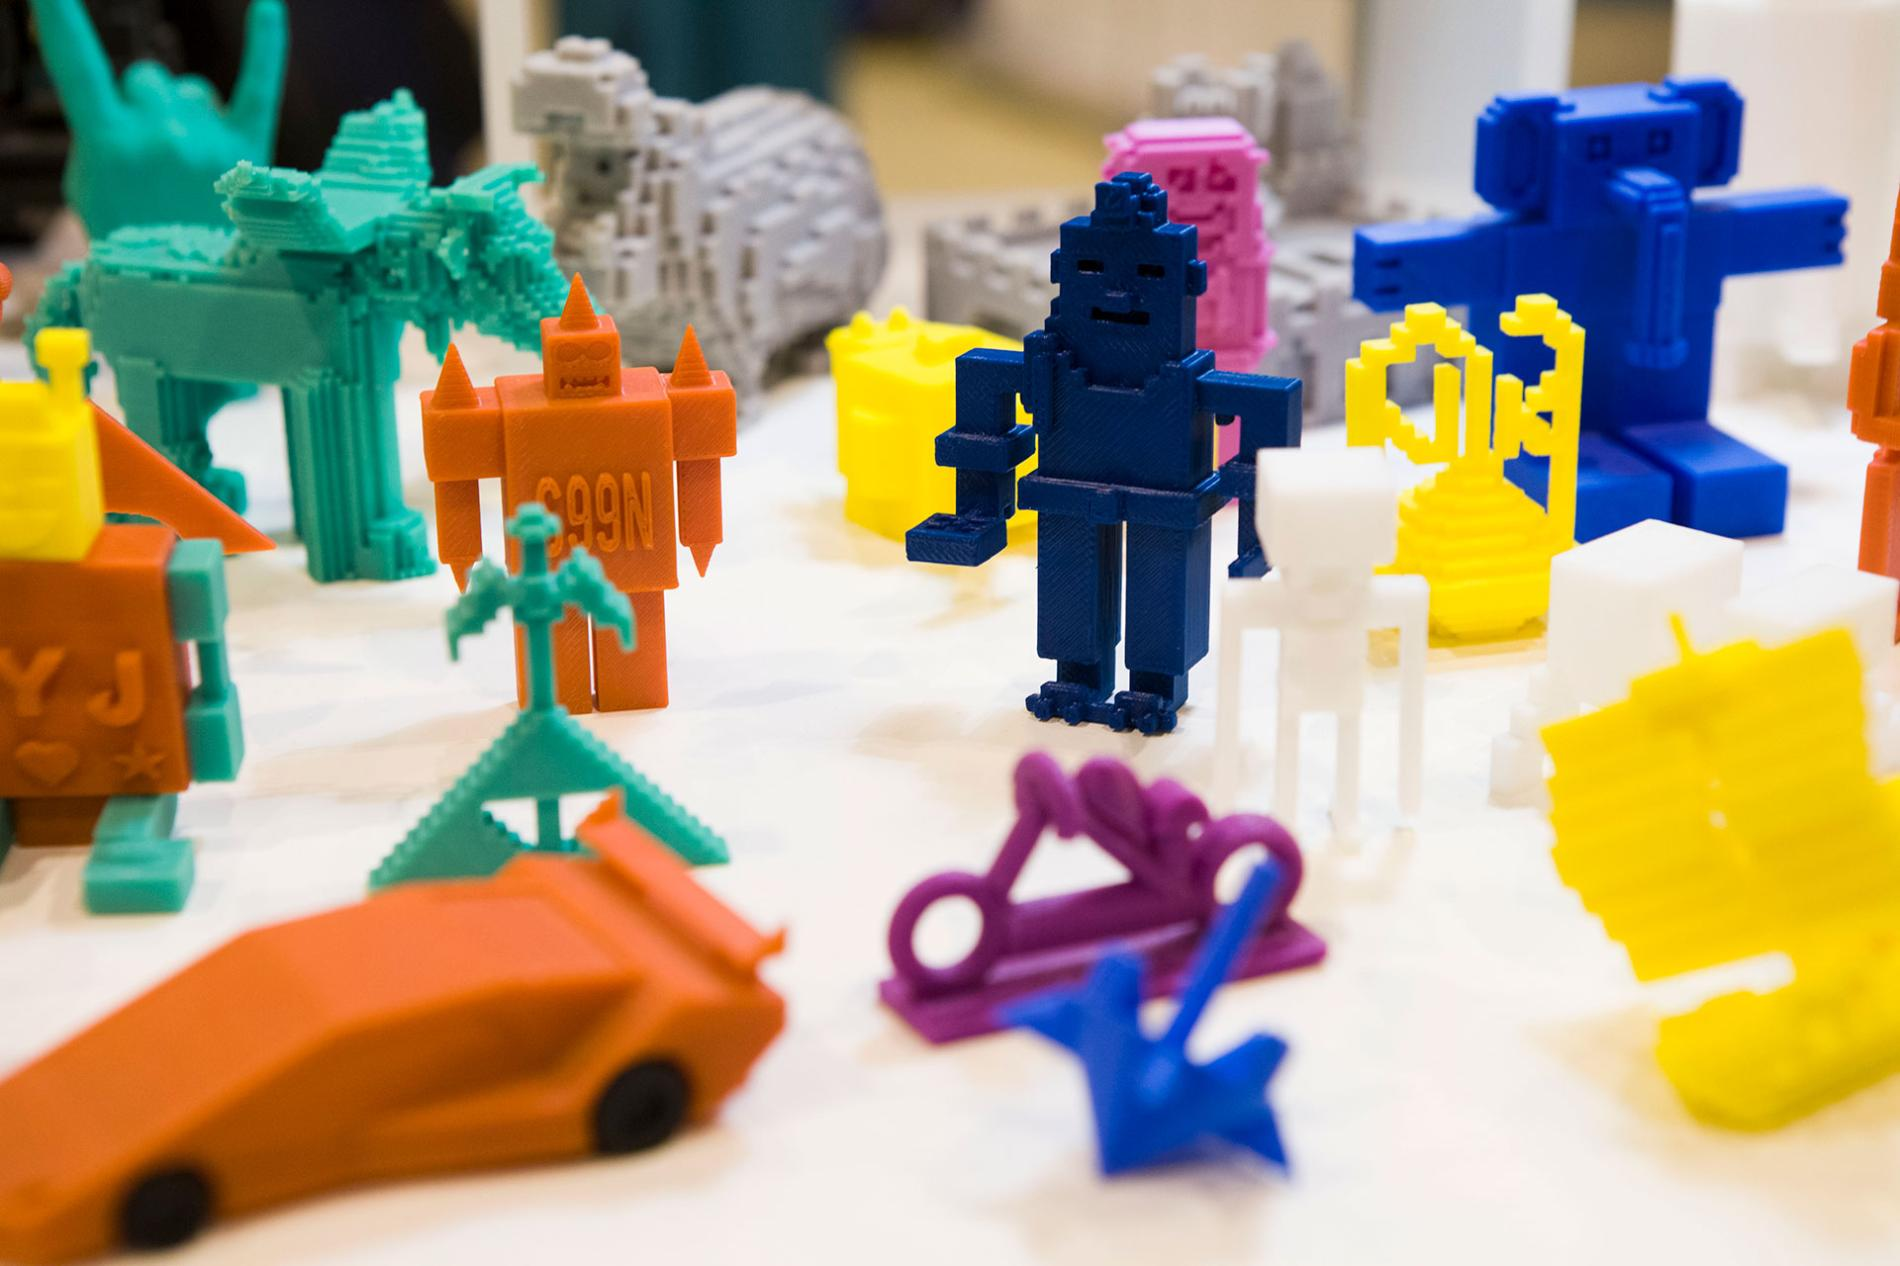 Figures made with a 3d printer